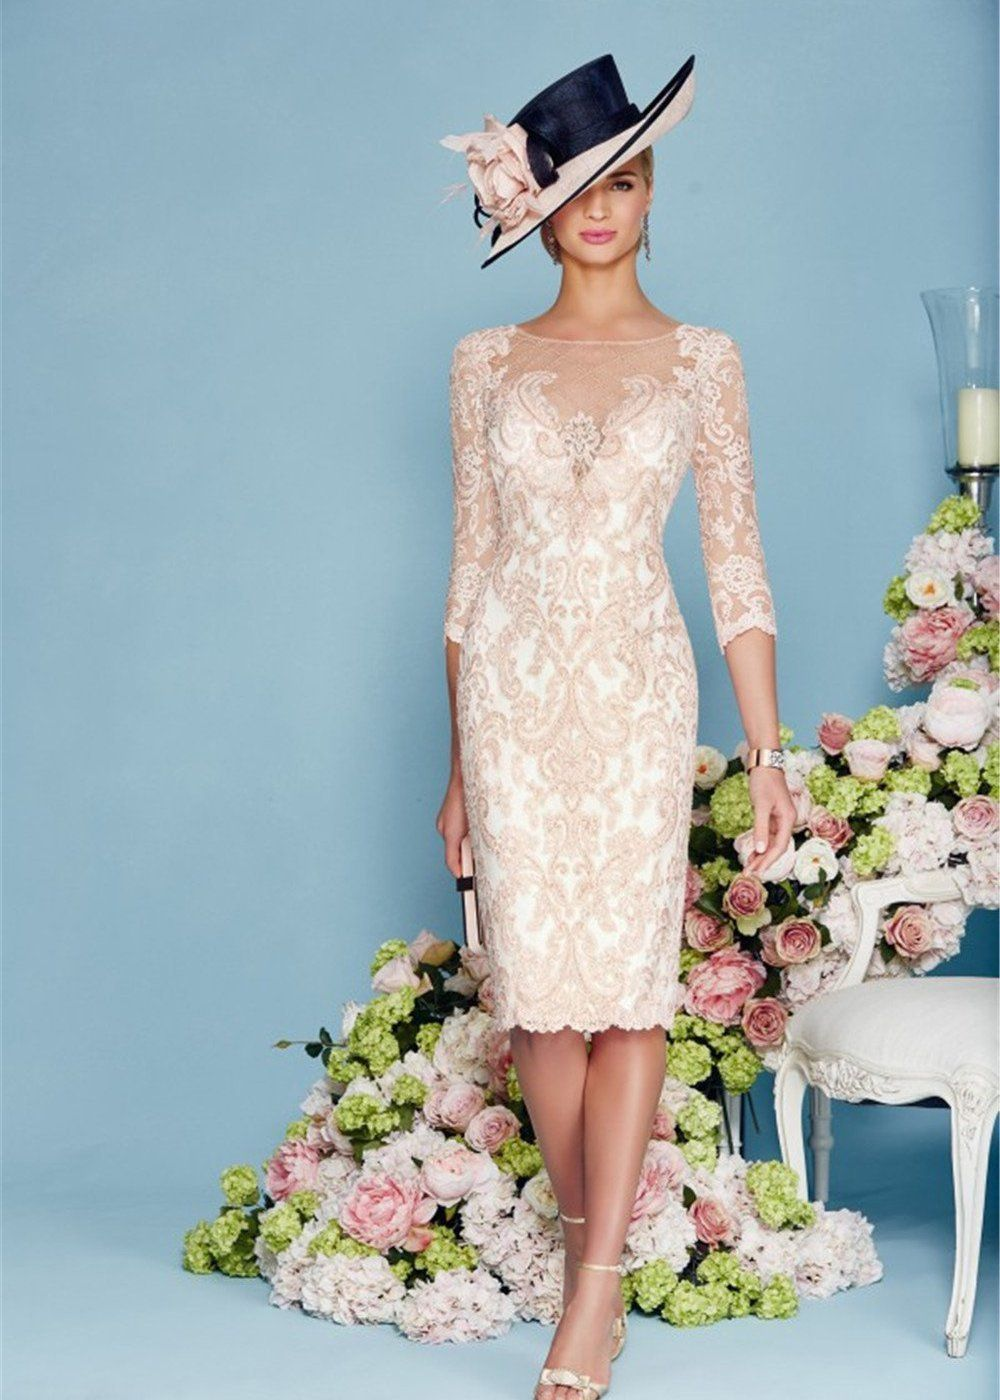 Light Pink Chiffon Lace Mother of the Bride Dress | Frock coat ...